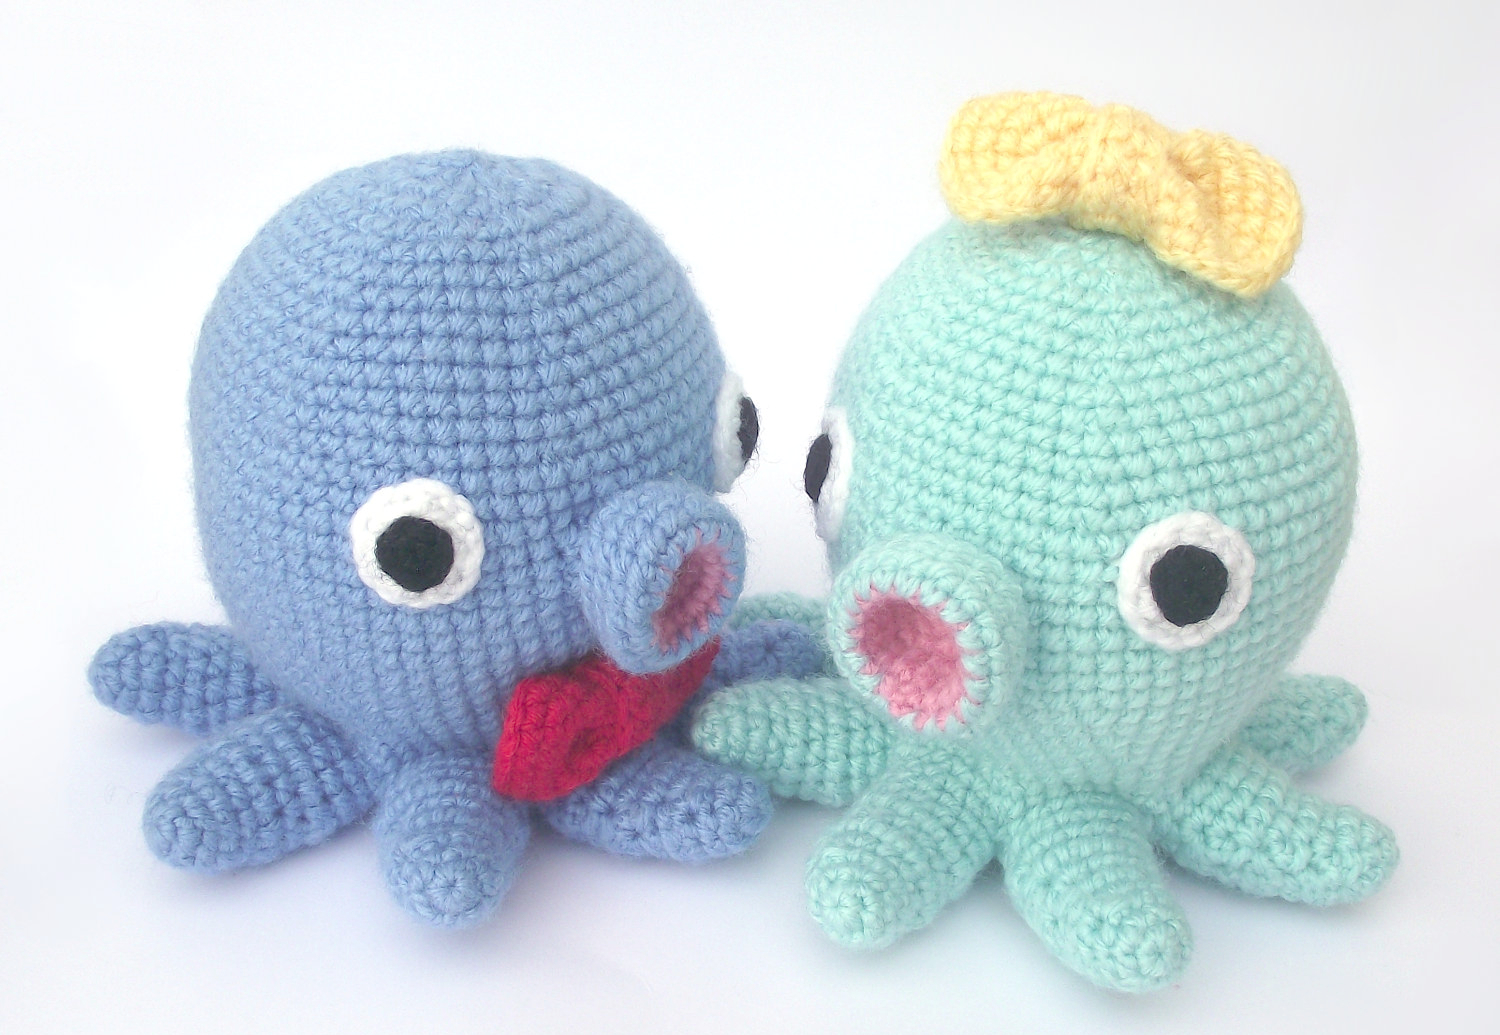 pierrette the amigurumi octopus 01